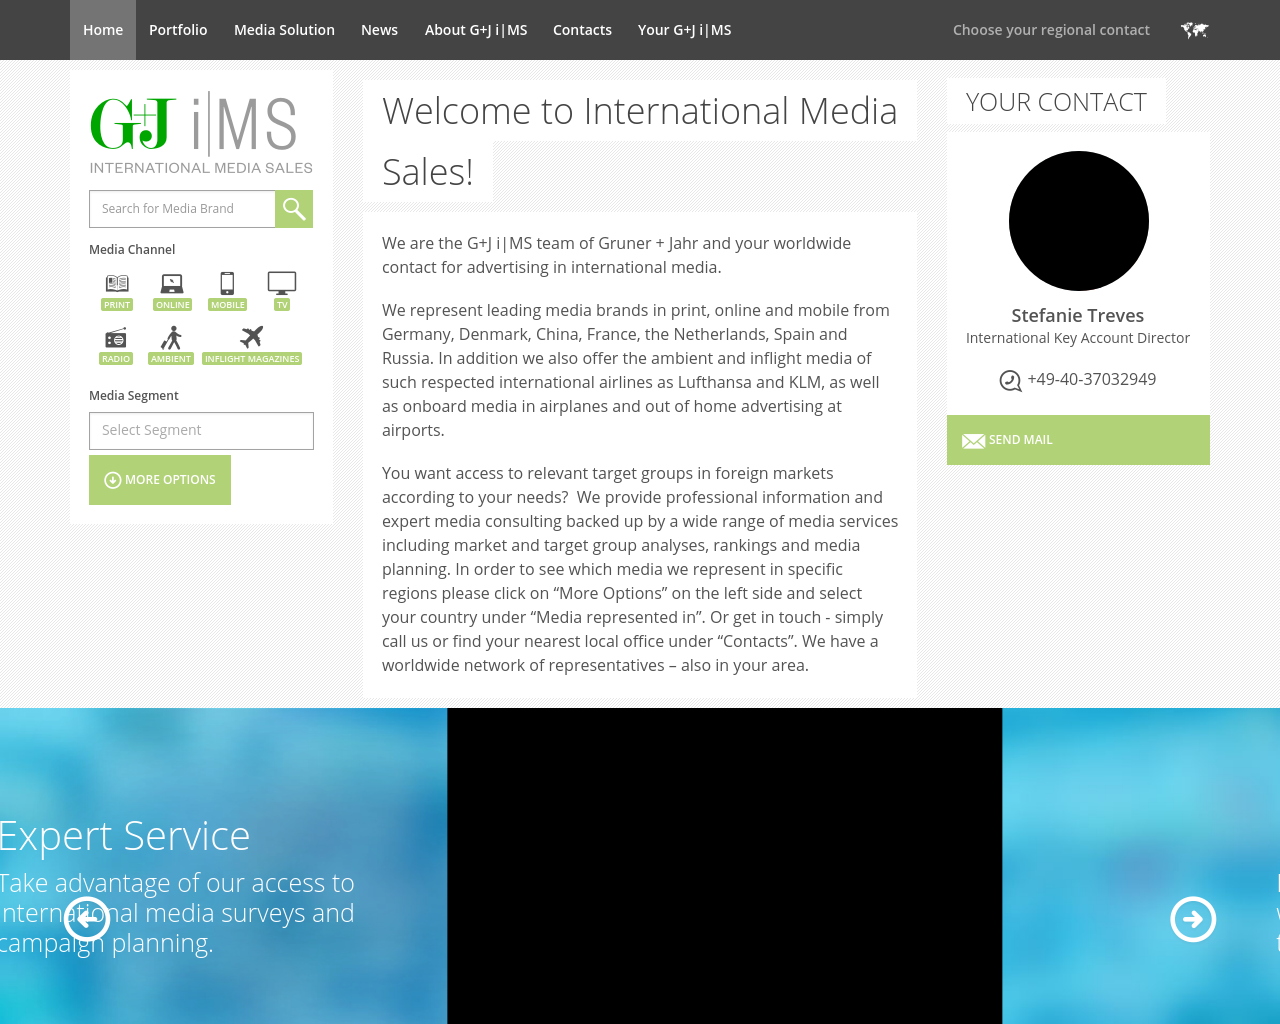 G+J-Media-Sales-Advertising-Reviews-Pricing